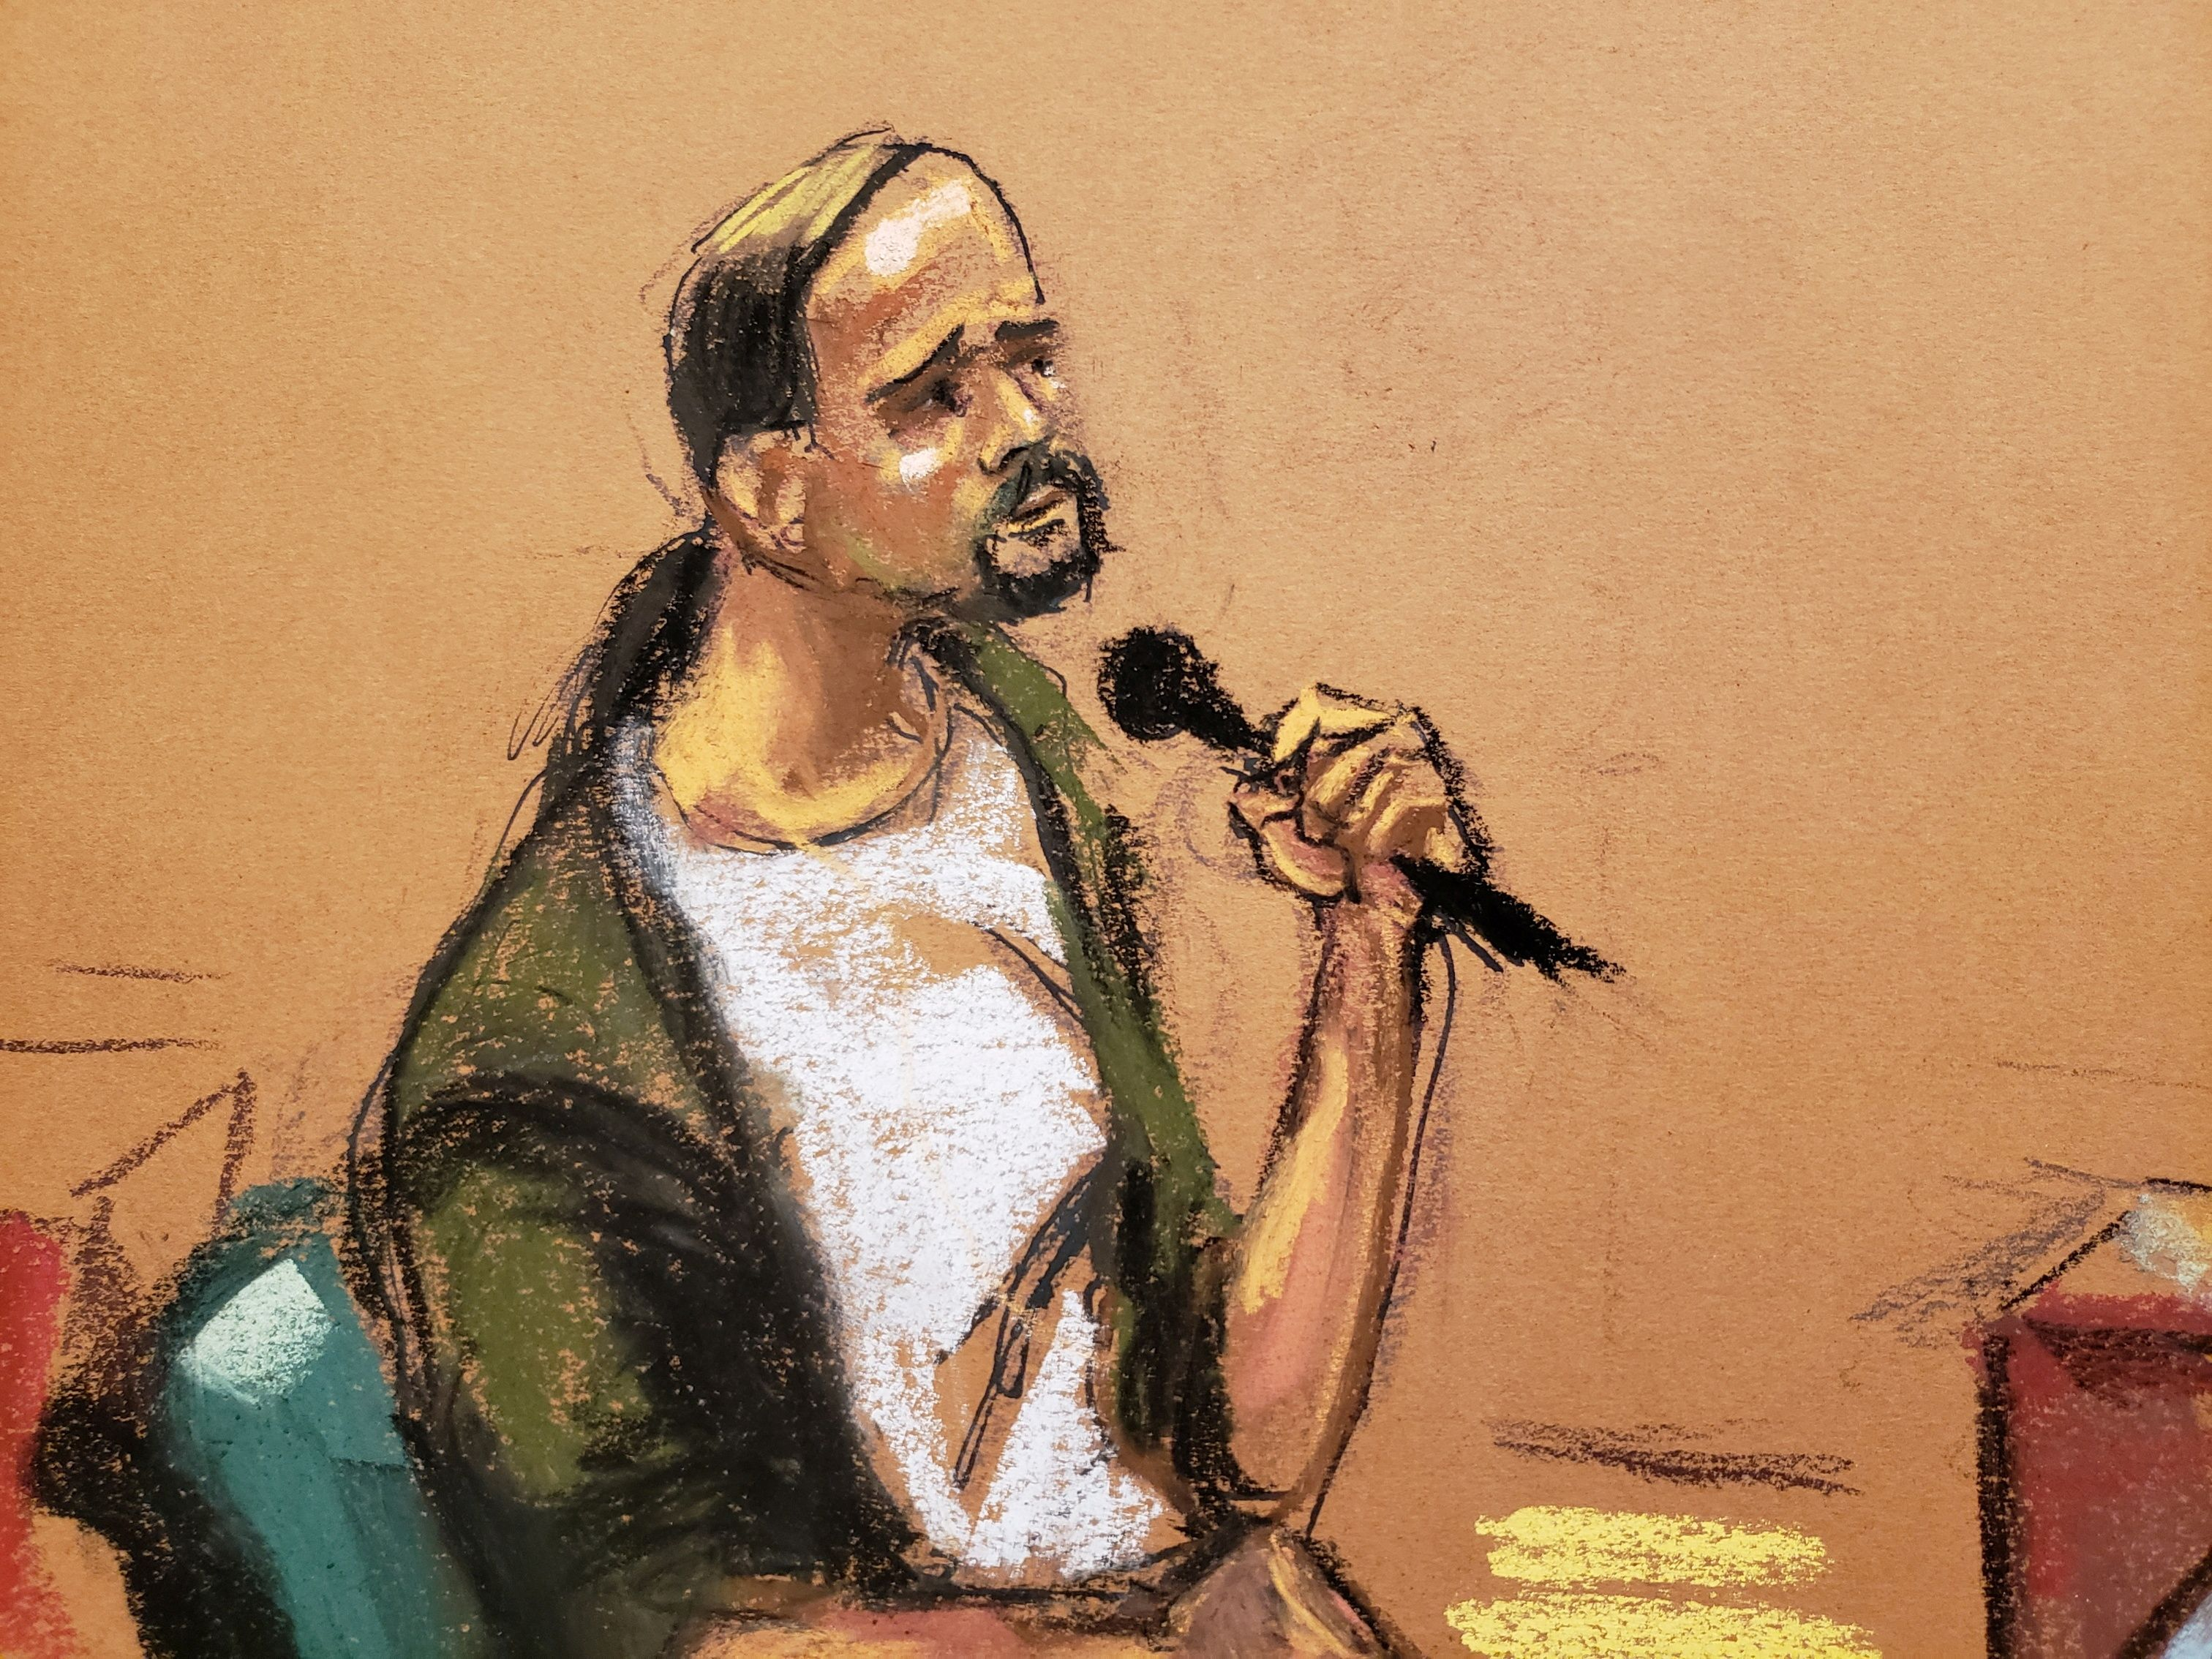 Jeffrey Meeks testifies for the defense during R. Kelly's sex abuse trial at Brooklyn's Federal District Court in a courtroom sketch in New York, U.S., September 21, 2021. REUTERS/Jane Rosenberg